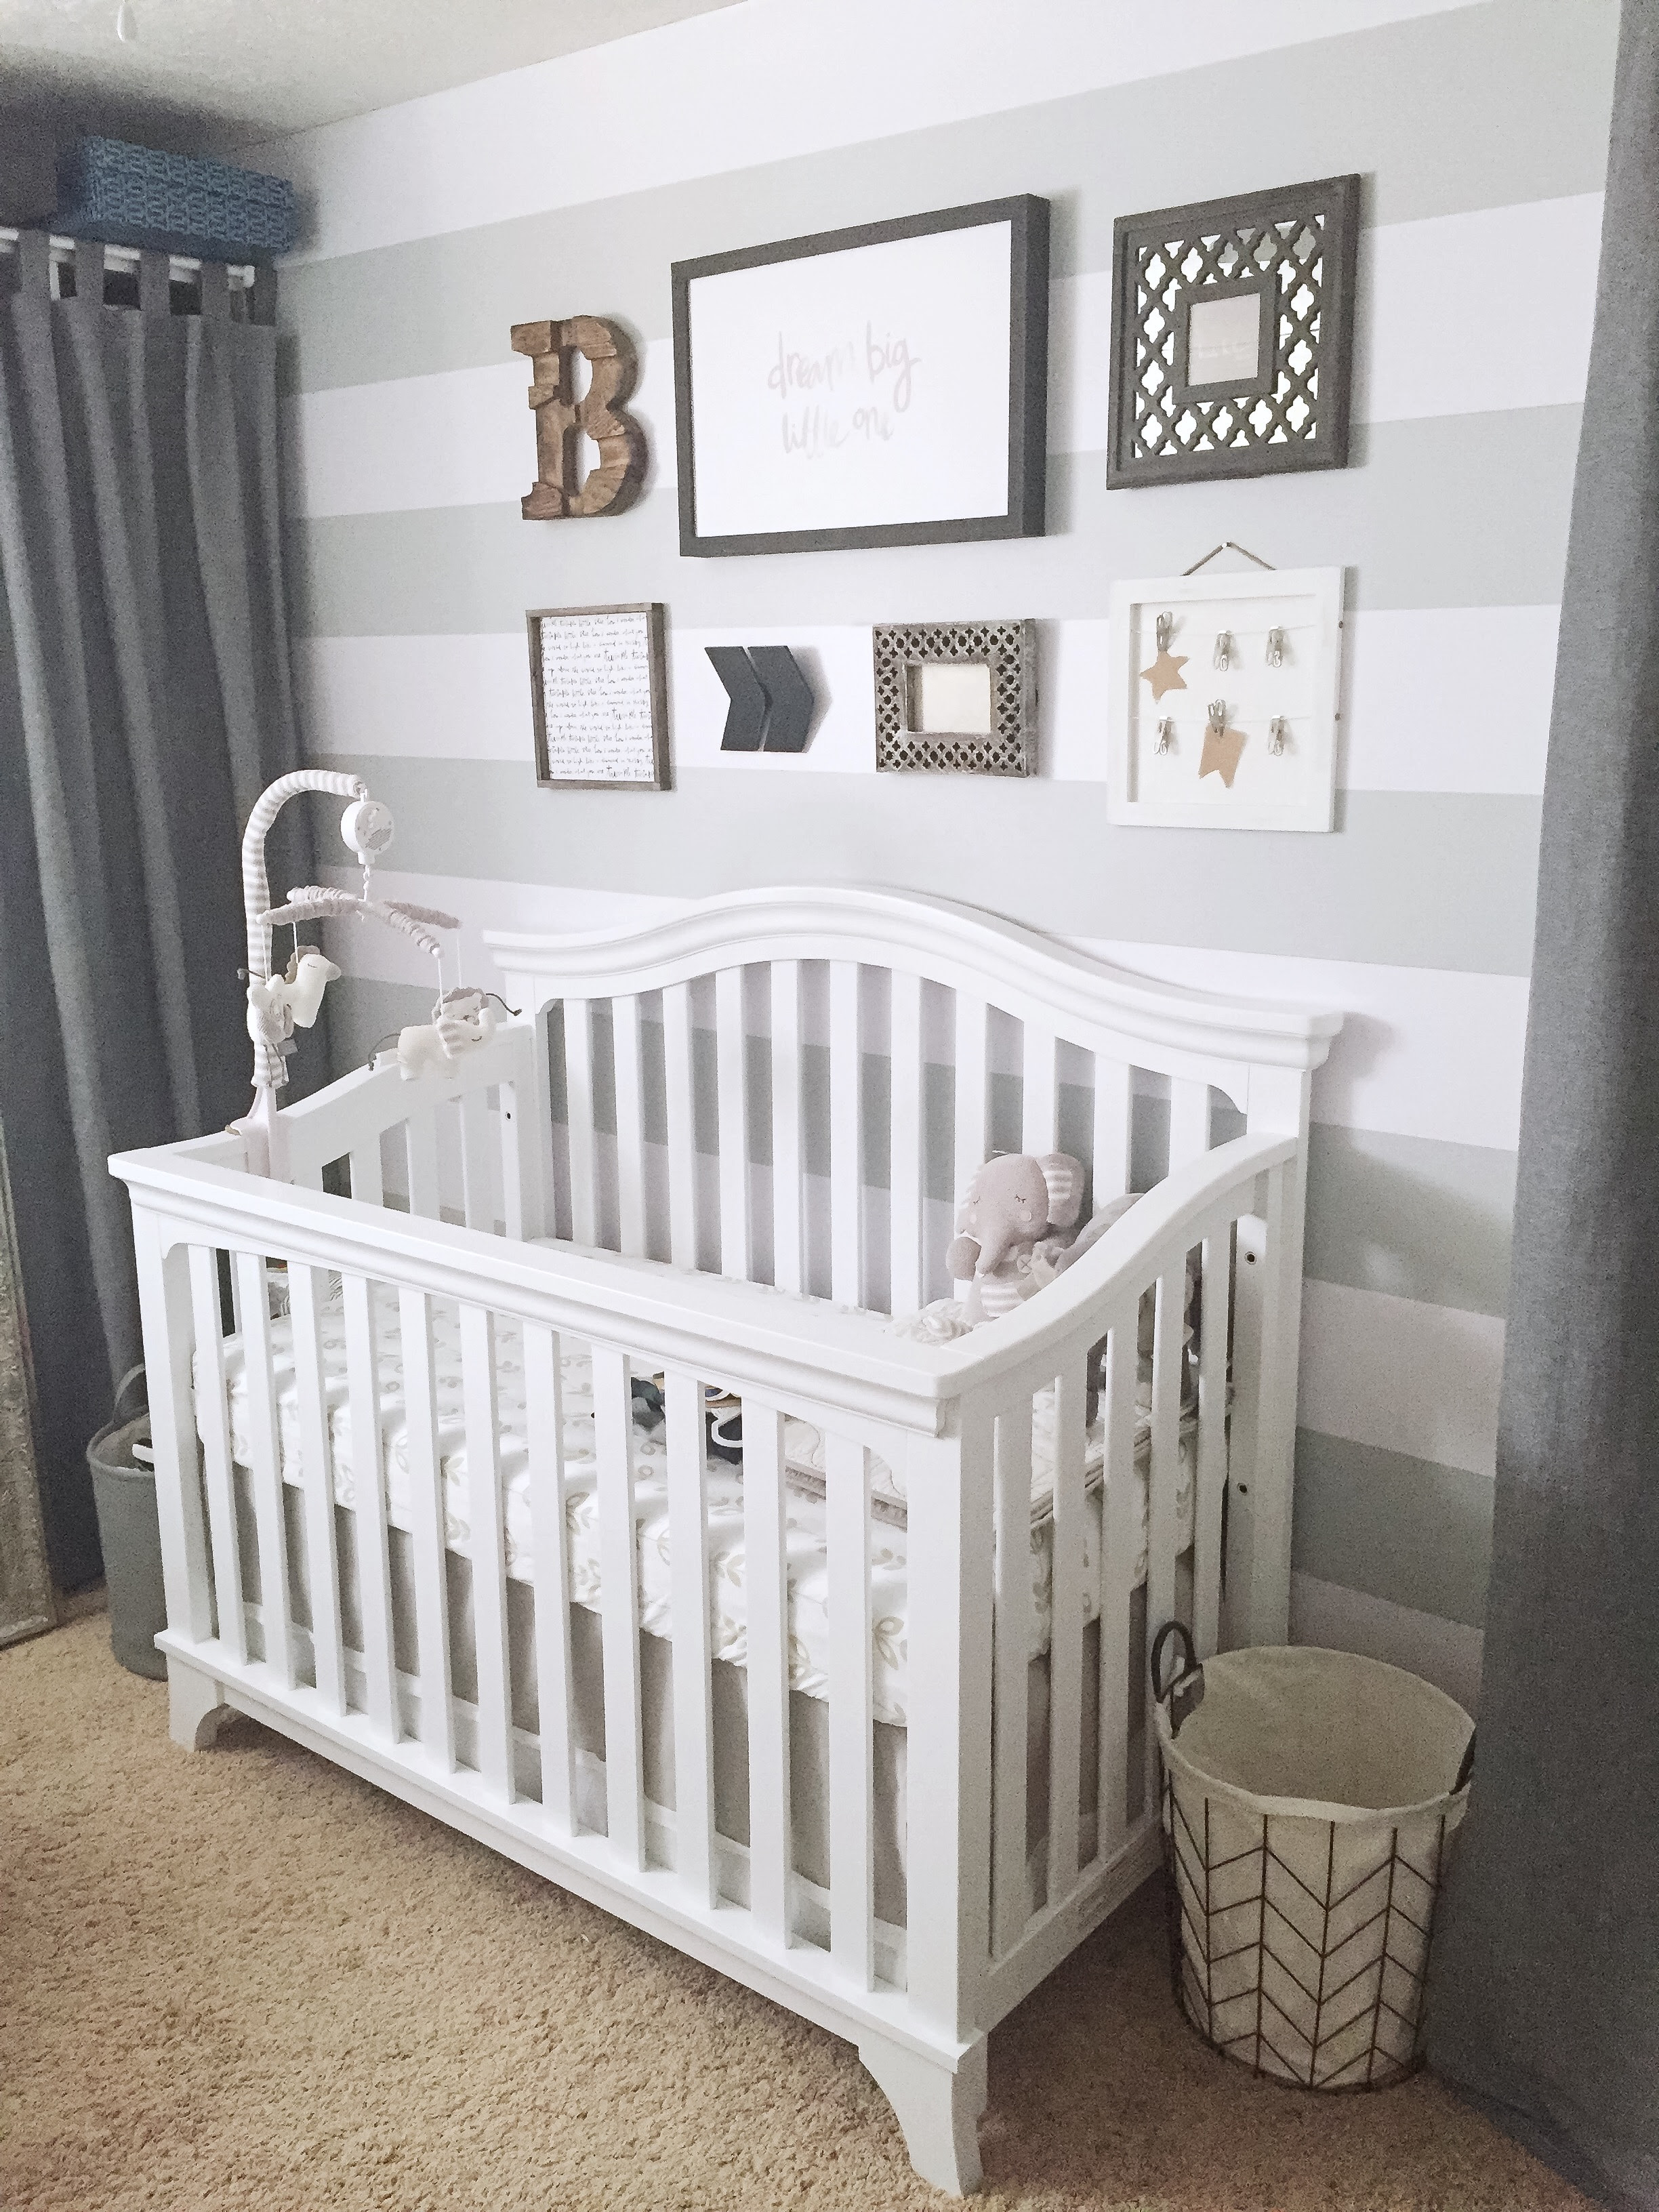 How to Transform a Small Room Into the Perfect Baby ...